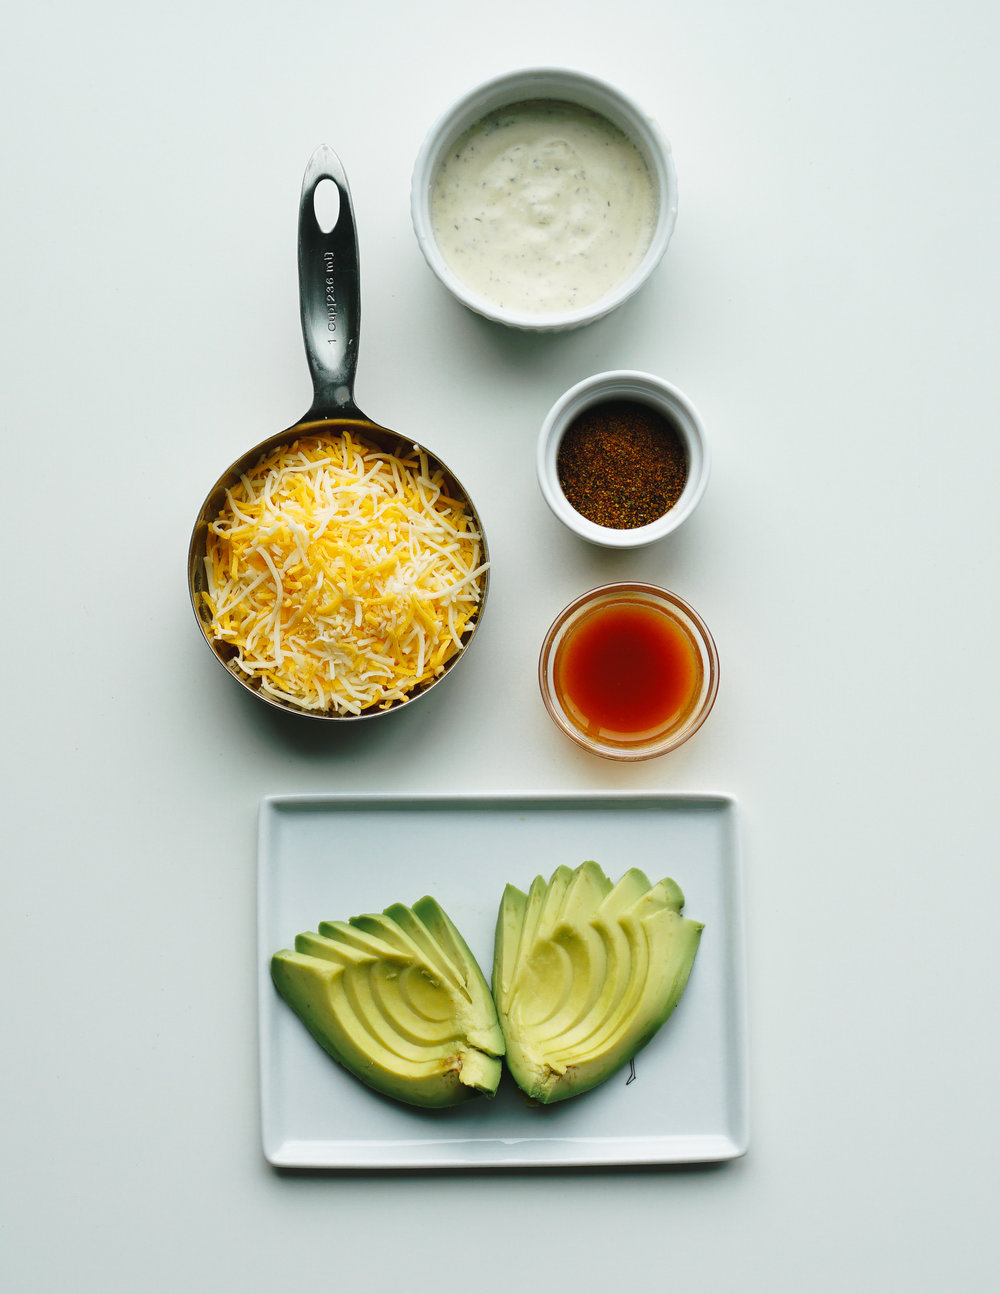 Avocado Quesadilla (Keto-Friendly Recipe) - Keto Recipe, Keto, Gluten Free, Low Carb - www.letsregale.com 3.jpg